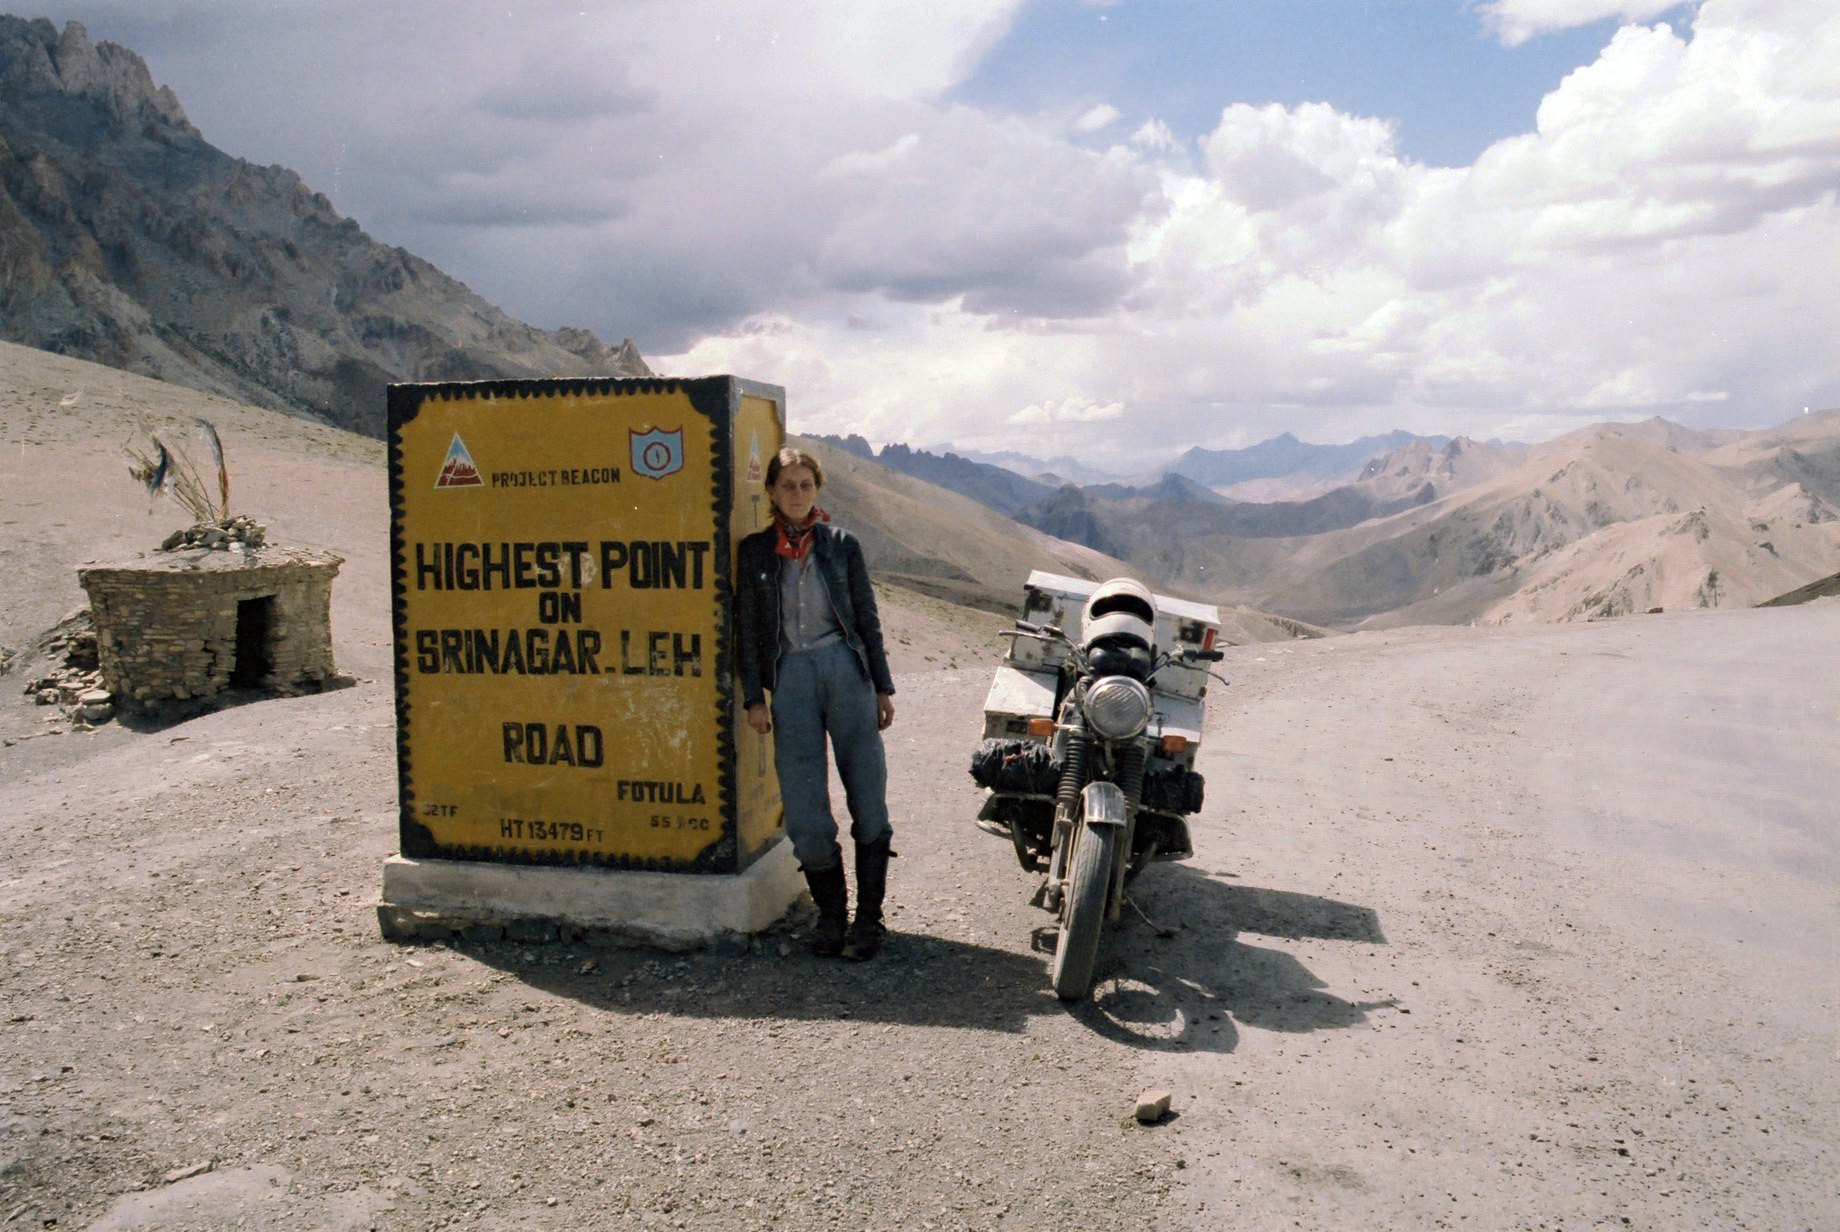 51 .Highest point Road to Leh- Ladakh